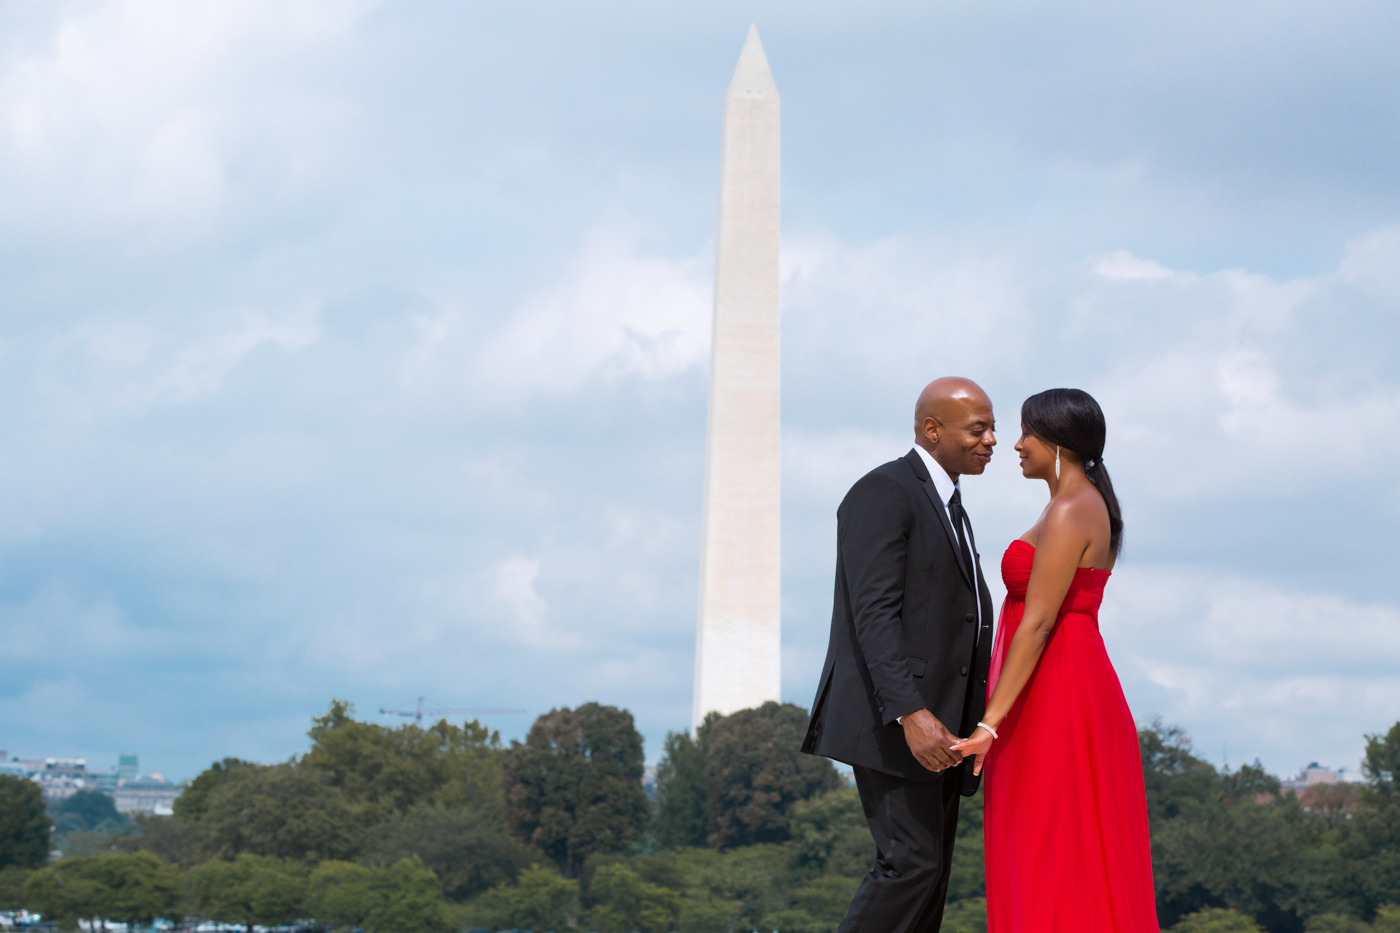 wedding-anniversary-photo-shoot-in-washington-dc-ksenia-pro-photography-43